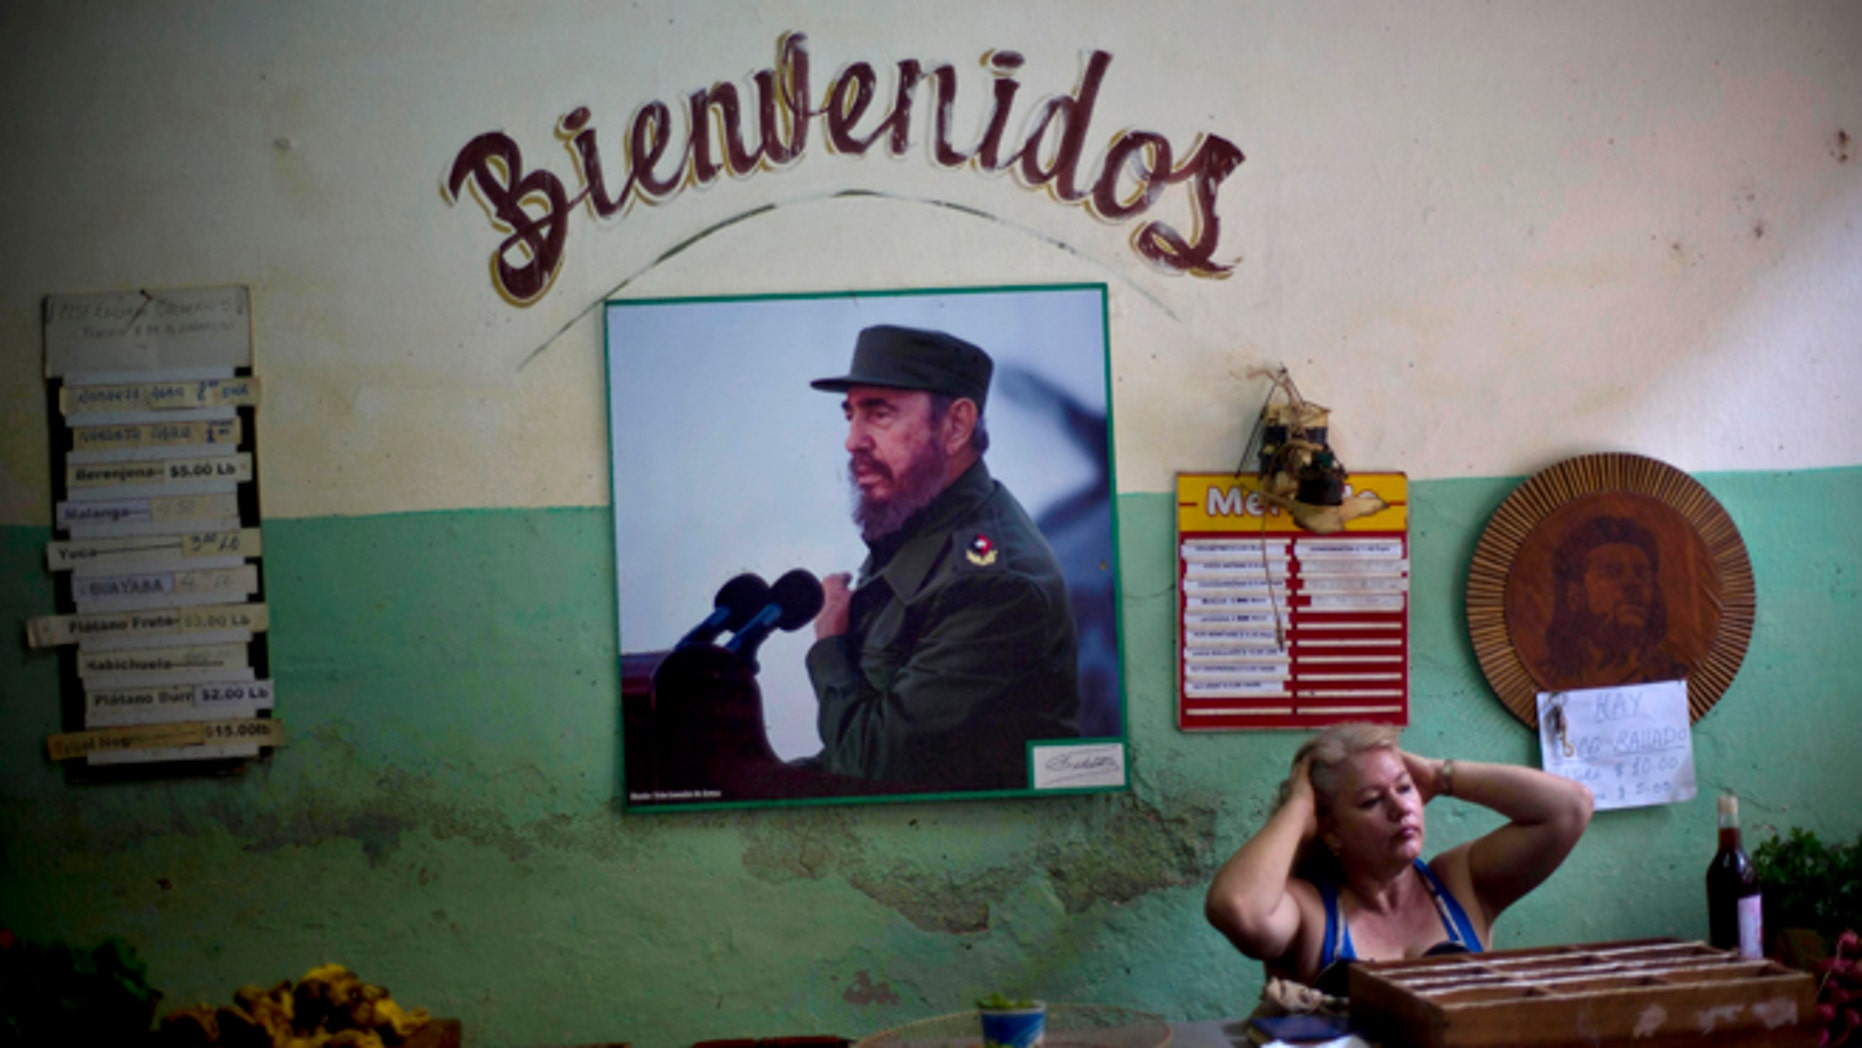 "FILE - In this Dec. 26, 2014 file photo, a photograph of Fidel Castro hangs under the Spanish word ""Welcome"" on the wall at a state-run food market in Havana, Cuba. On Monday, Jan. 26, 2015, after more than a month of silence, Castro made his first public comments about the news that the U.S. and his island nation will restore diplomatic relations after more than 50 years of hostility. (AP Photo/Ramon Espinosa, File)"